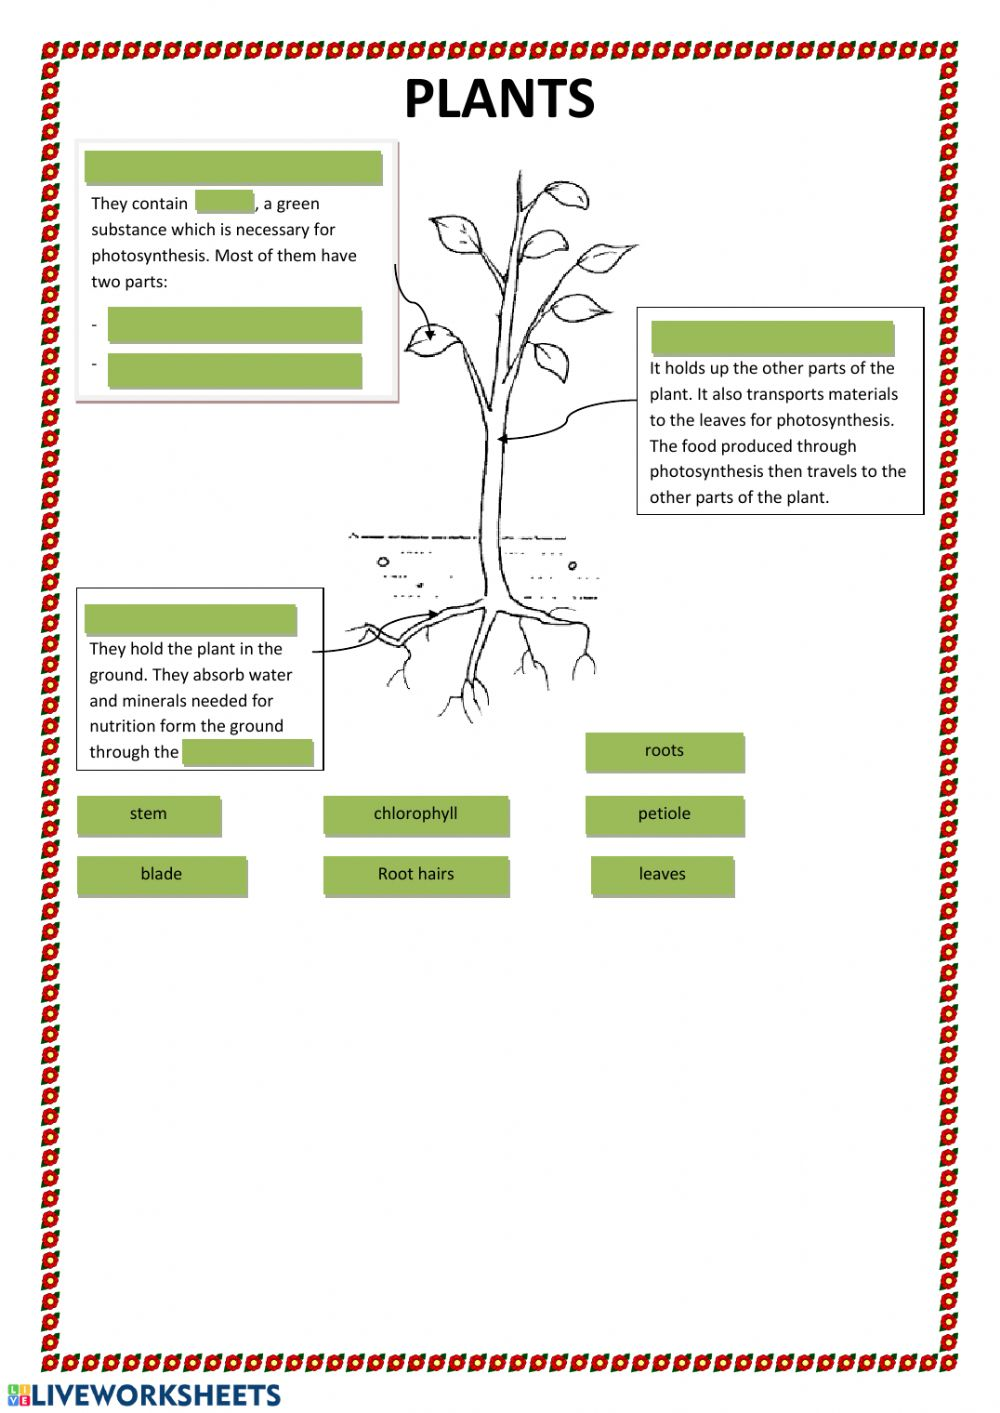 medium resolution of Parts of plants interactive worksheet